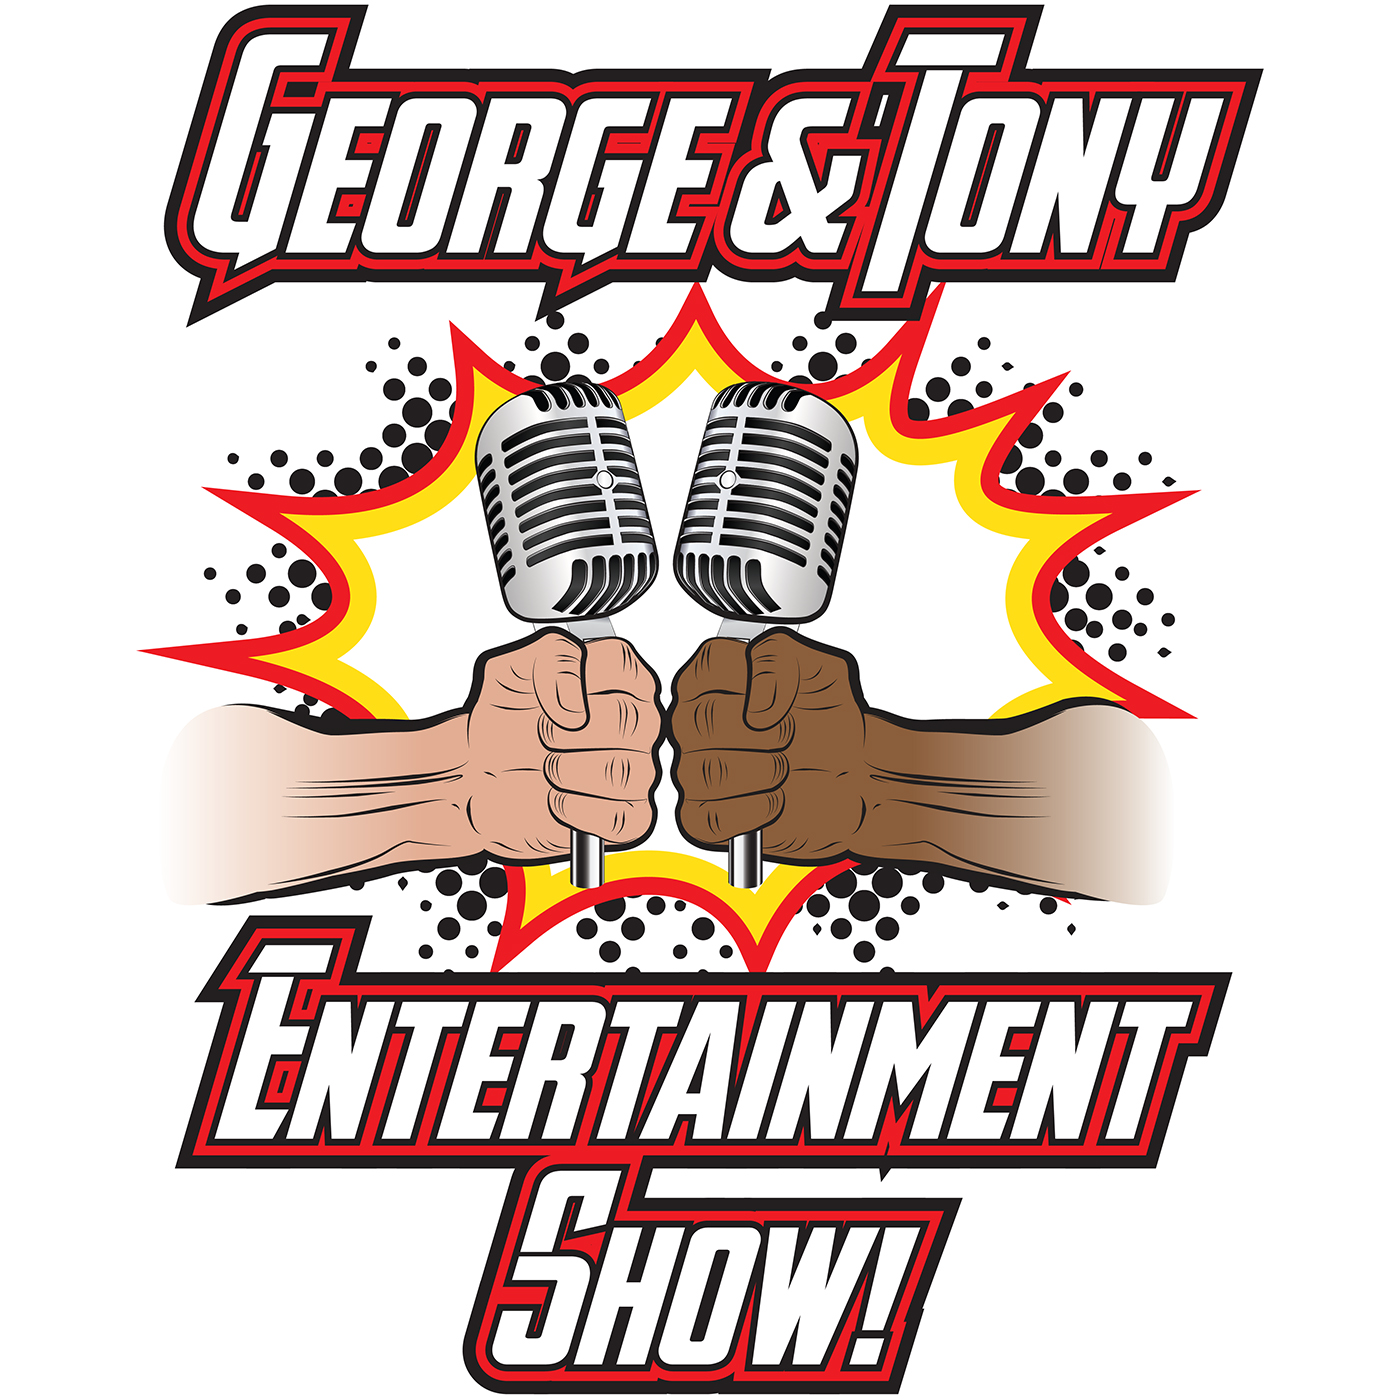 George and Tony Entertainment Show #25